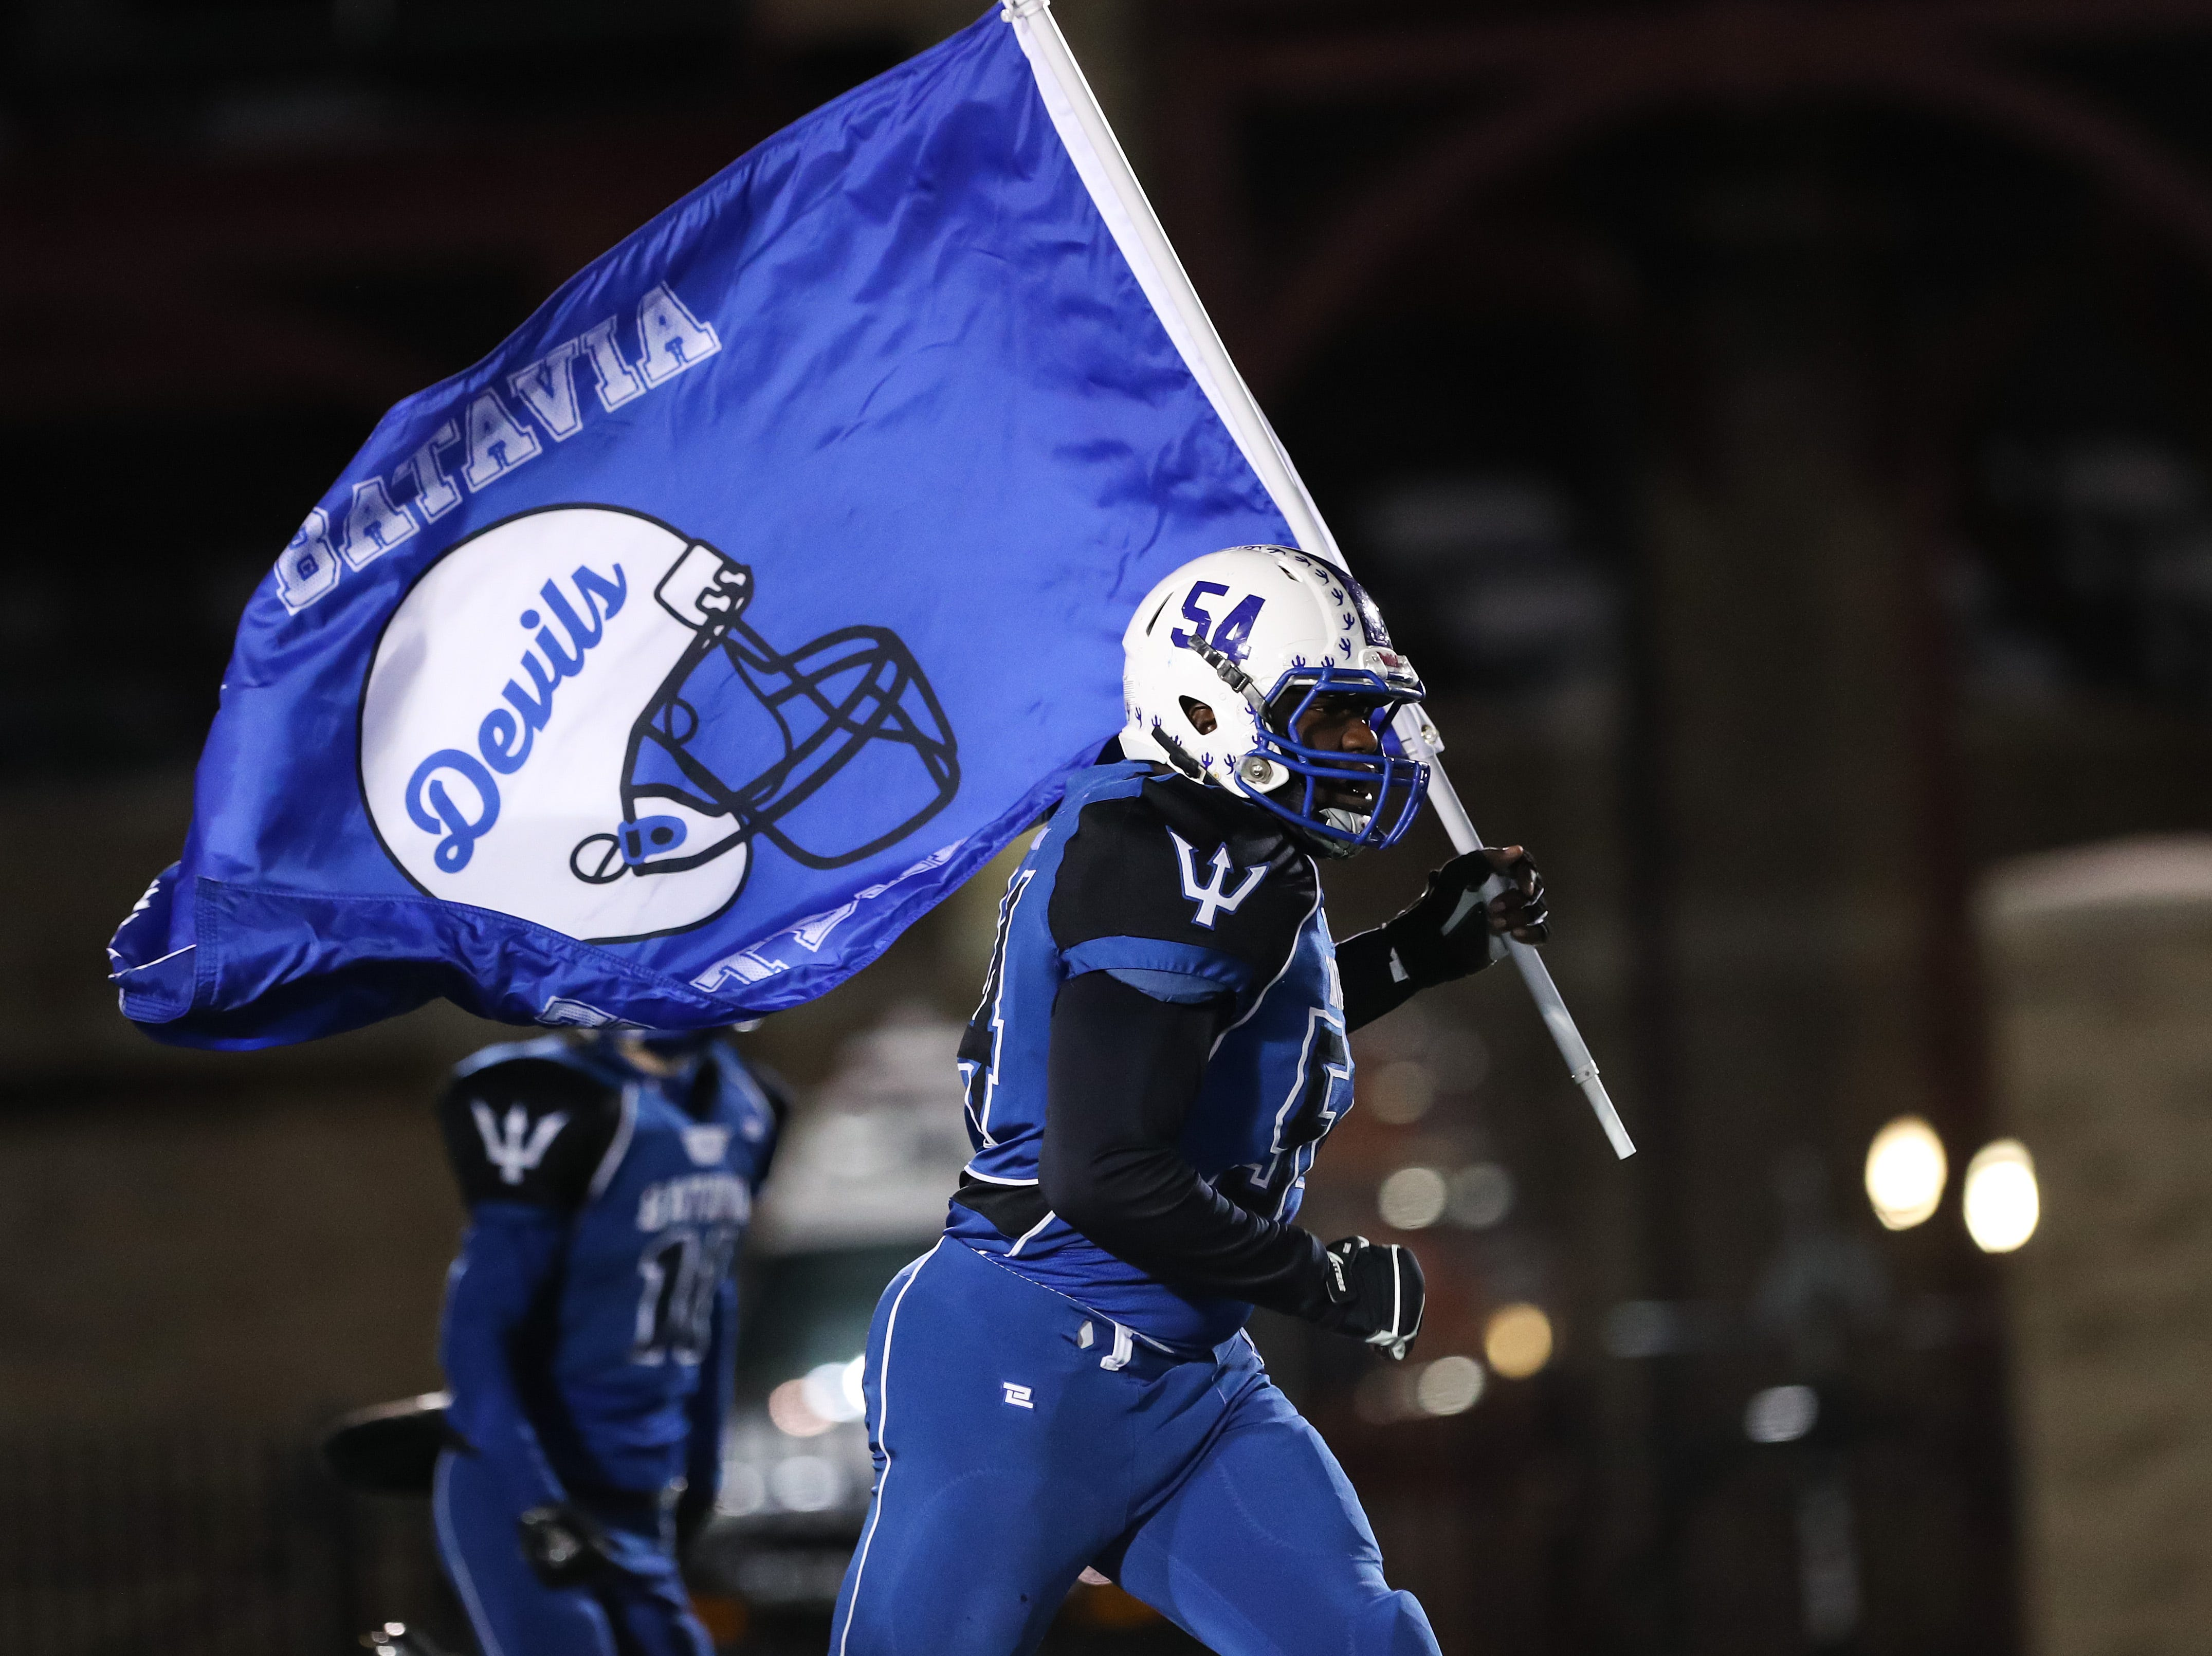 Batavia Blue Devils Josh Barber runs onto the field with the flag before the  Section V Class B championship high school football game against the Wayne Eagles.